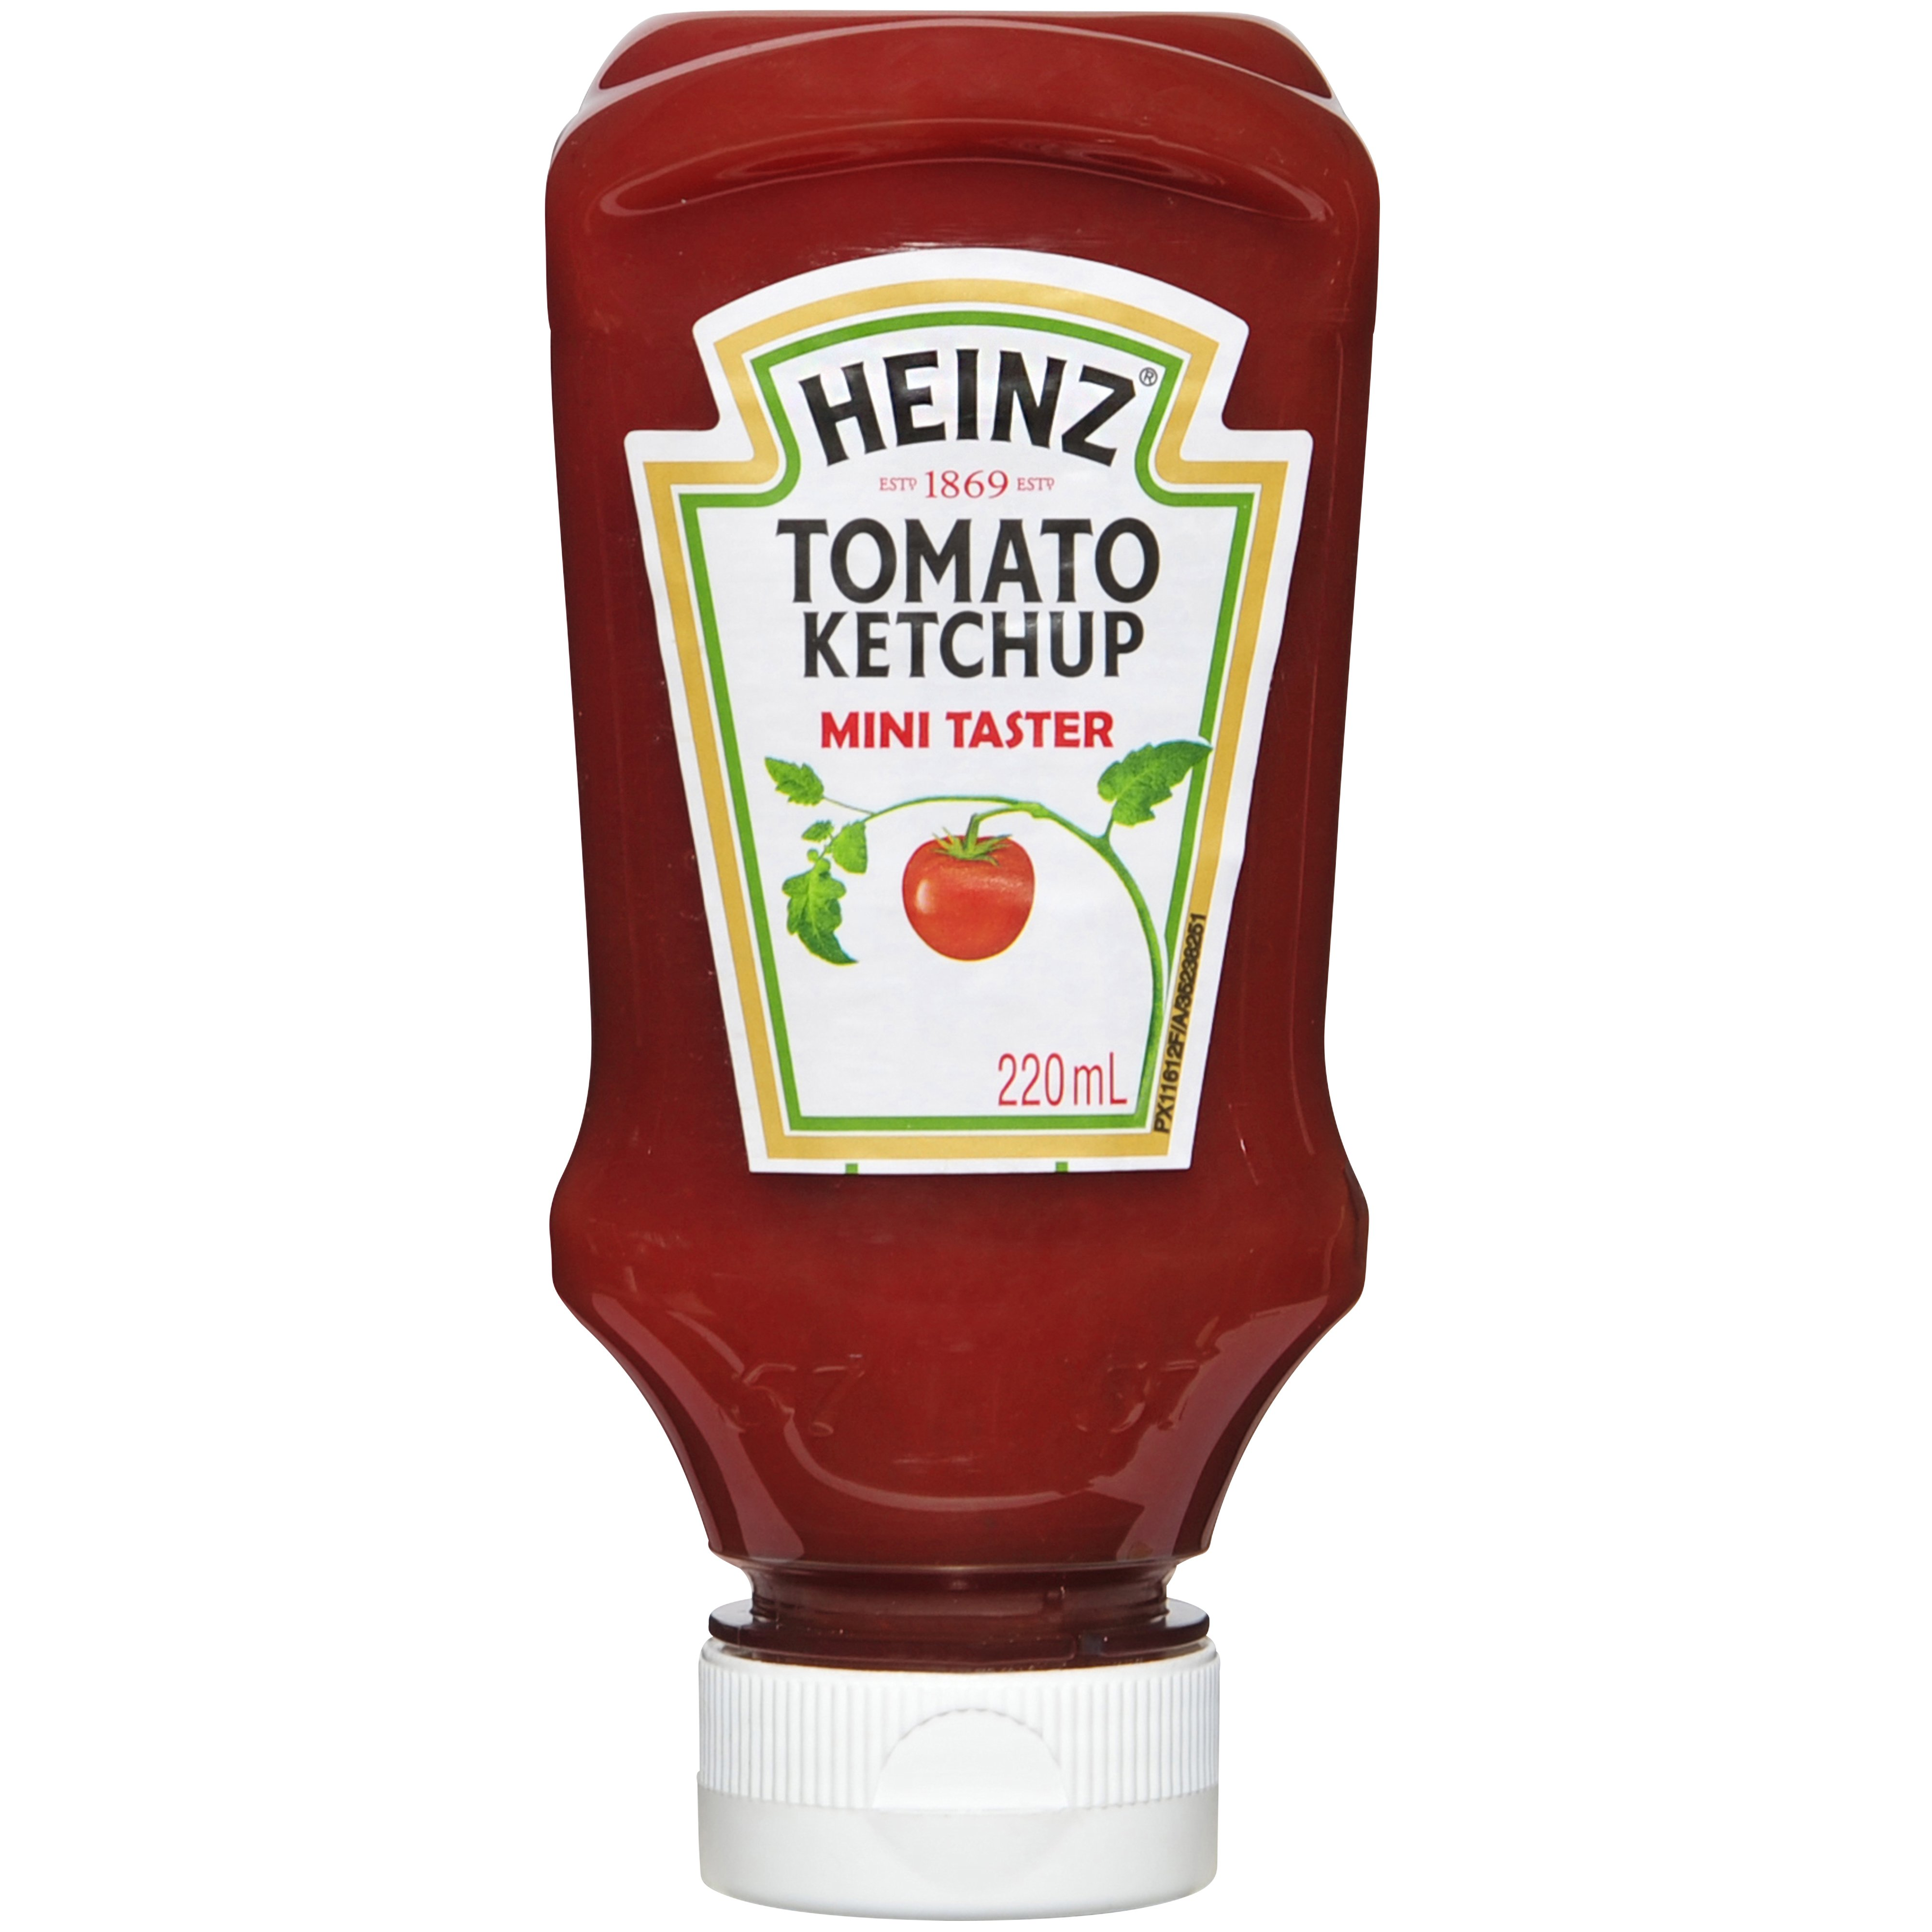 Photograph of 220mL Heinz® Tomato Ketchup product